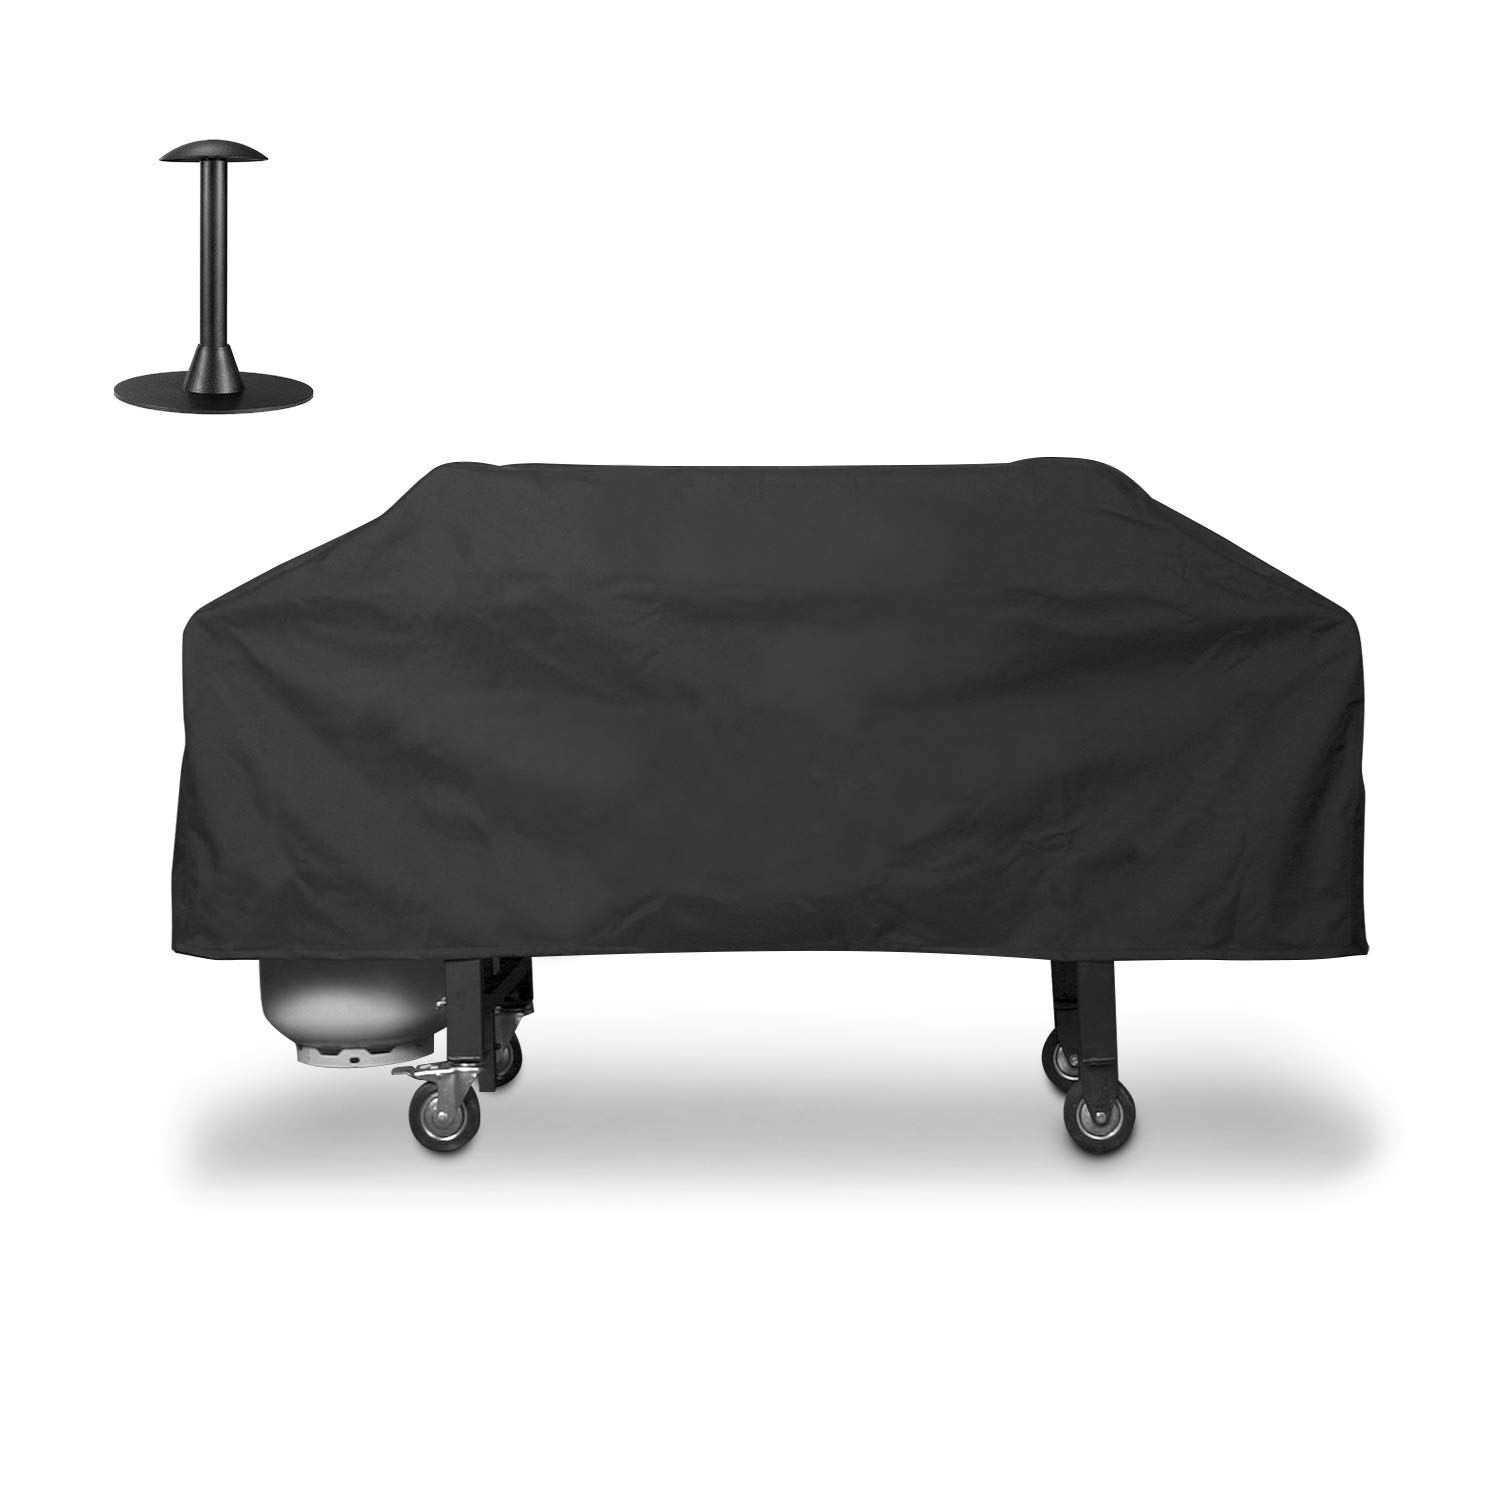 Unicook 36 inch Blackstone Grill Griddle Cover, Flat Top Cooking Station Grill Cover with Sealed Seam, Outdoor Heavy Duty Waterproof Stove Top Cover, Includes Support Pole to Prevent Water Pooling